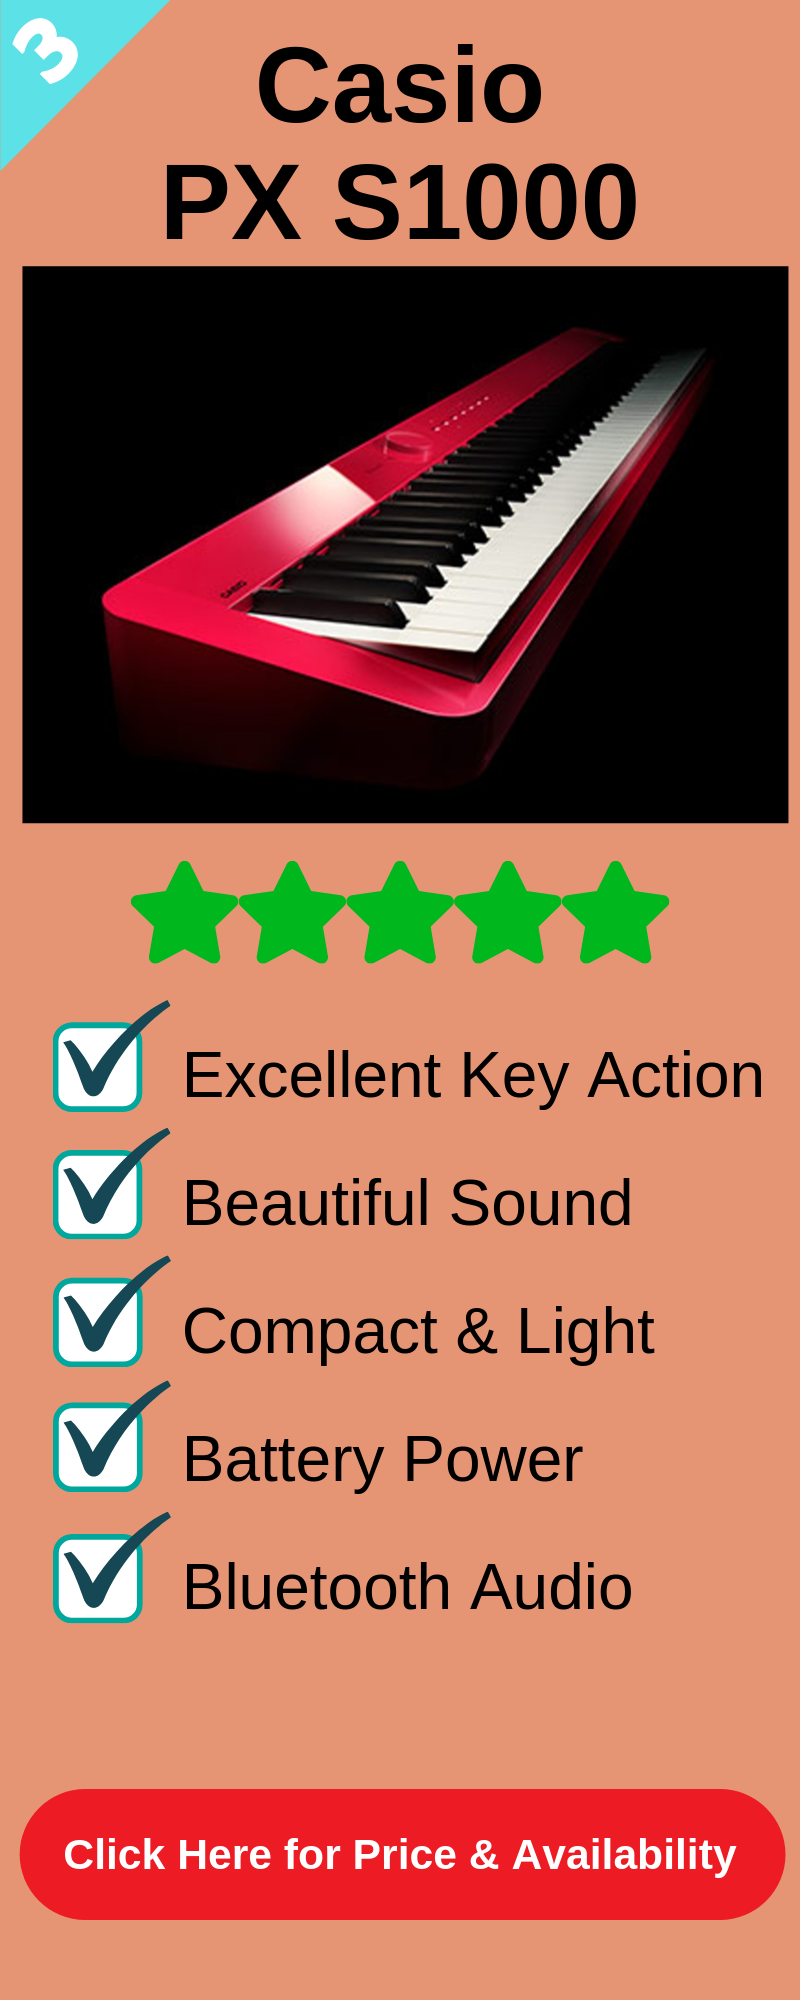 3rd best digital piano under 1000 is the Casio PX S1000